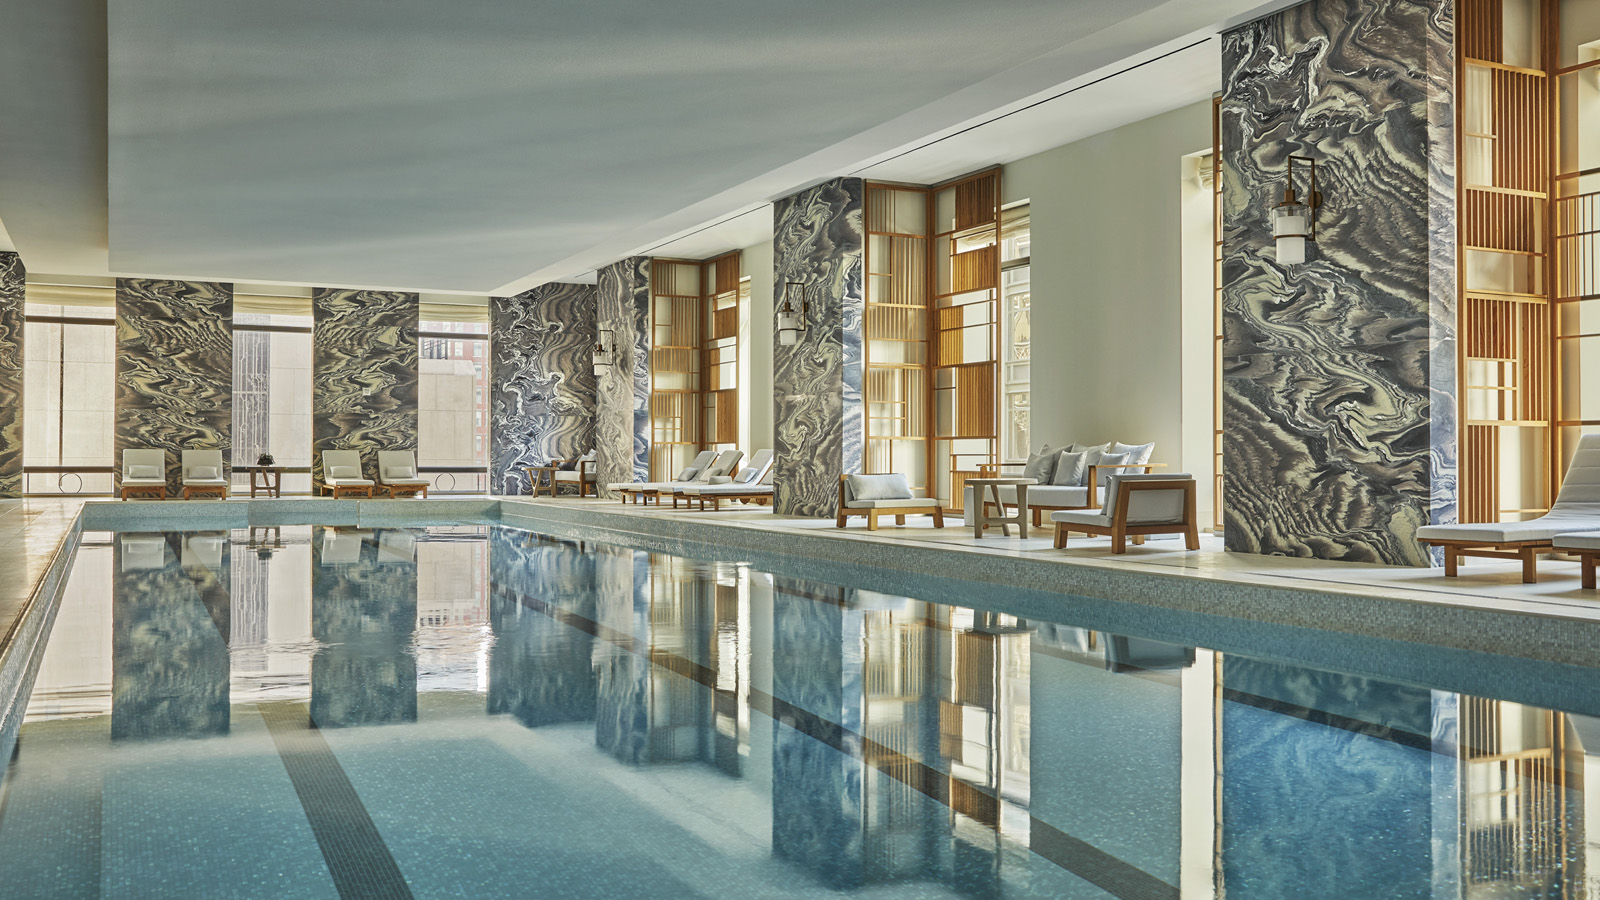 Hotel with indoor pool lap pool four seasons new york for 5000 square feet in square meters